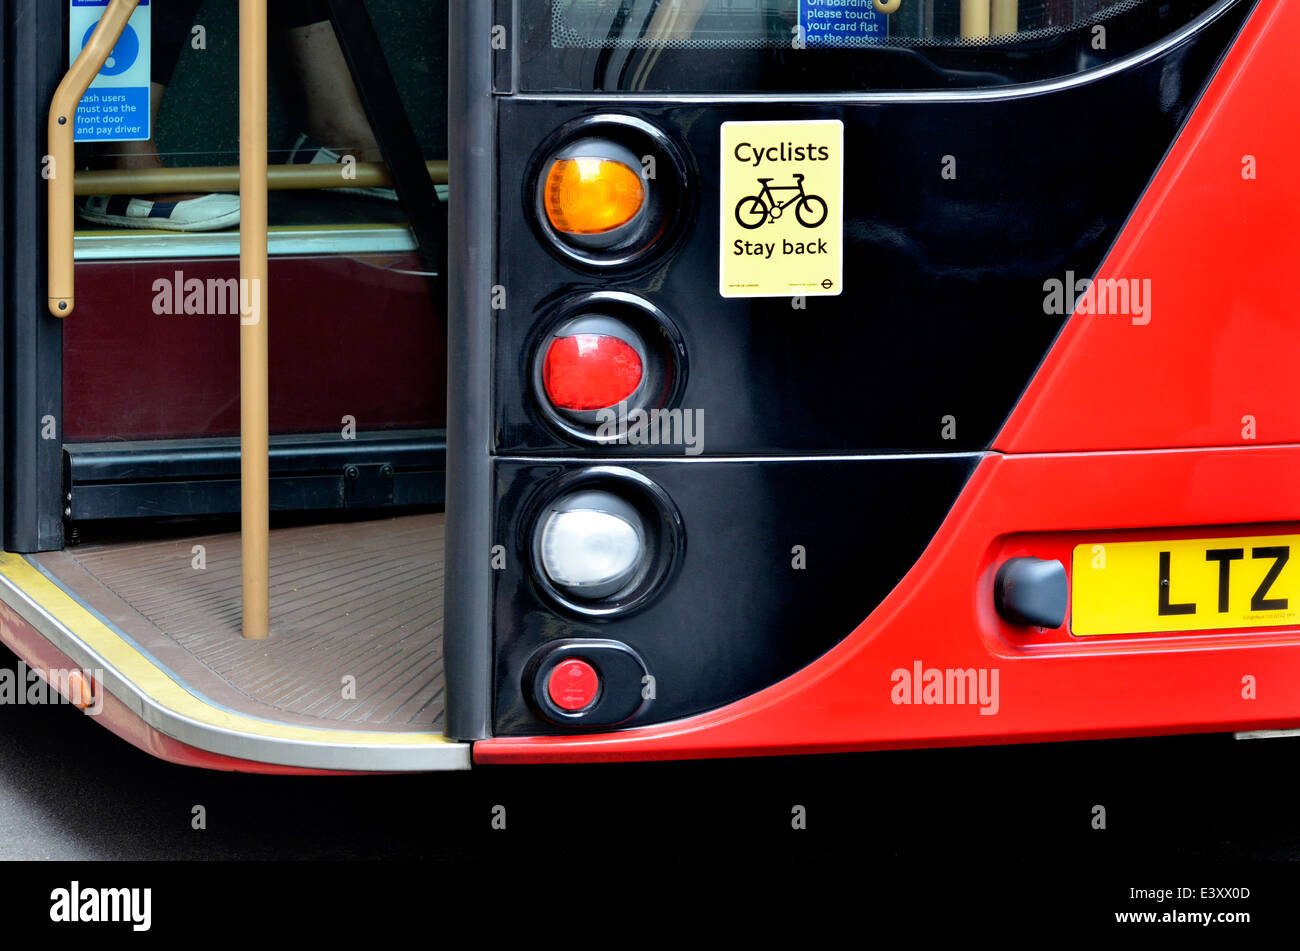 London, England, UK. New Routemaster Red London bus. Open back and warning to cyclists - Stock Image